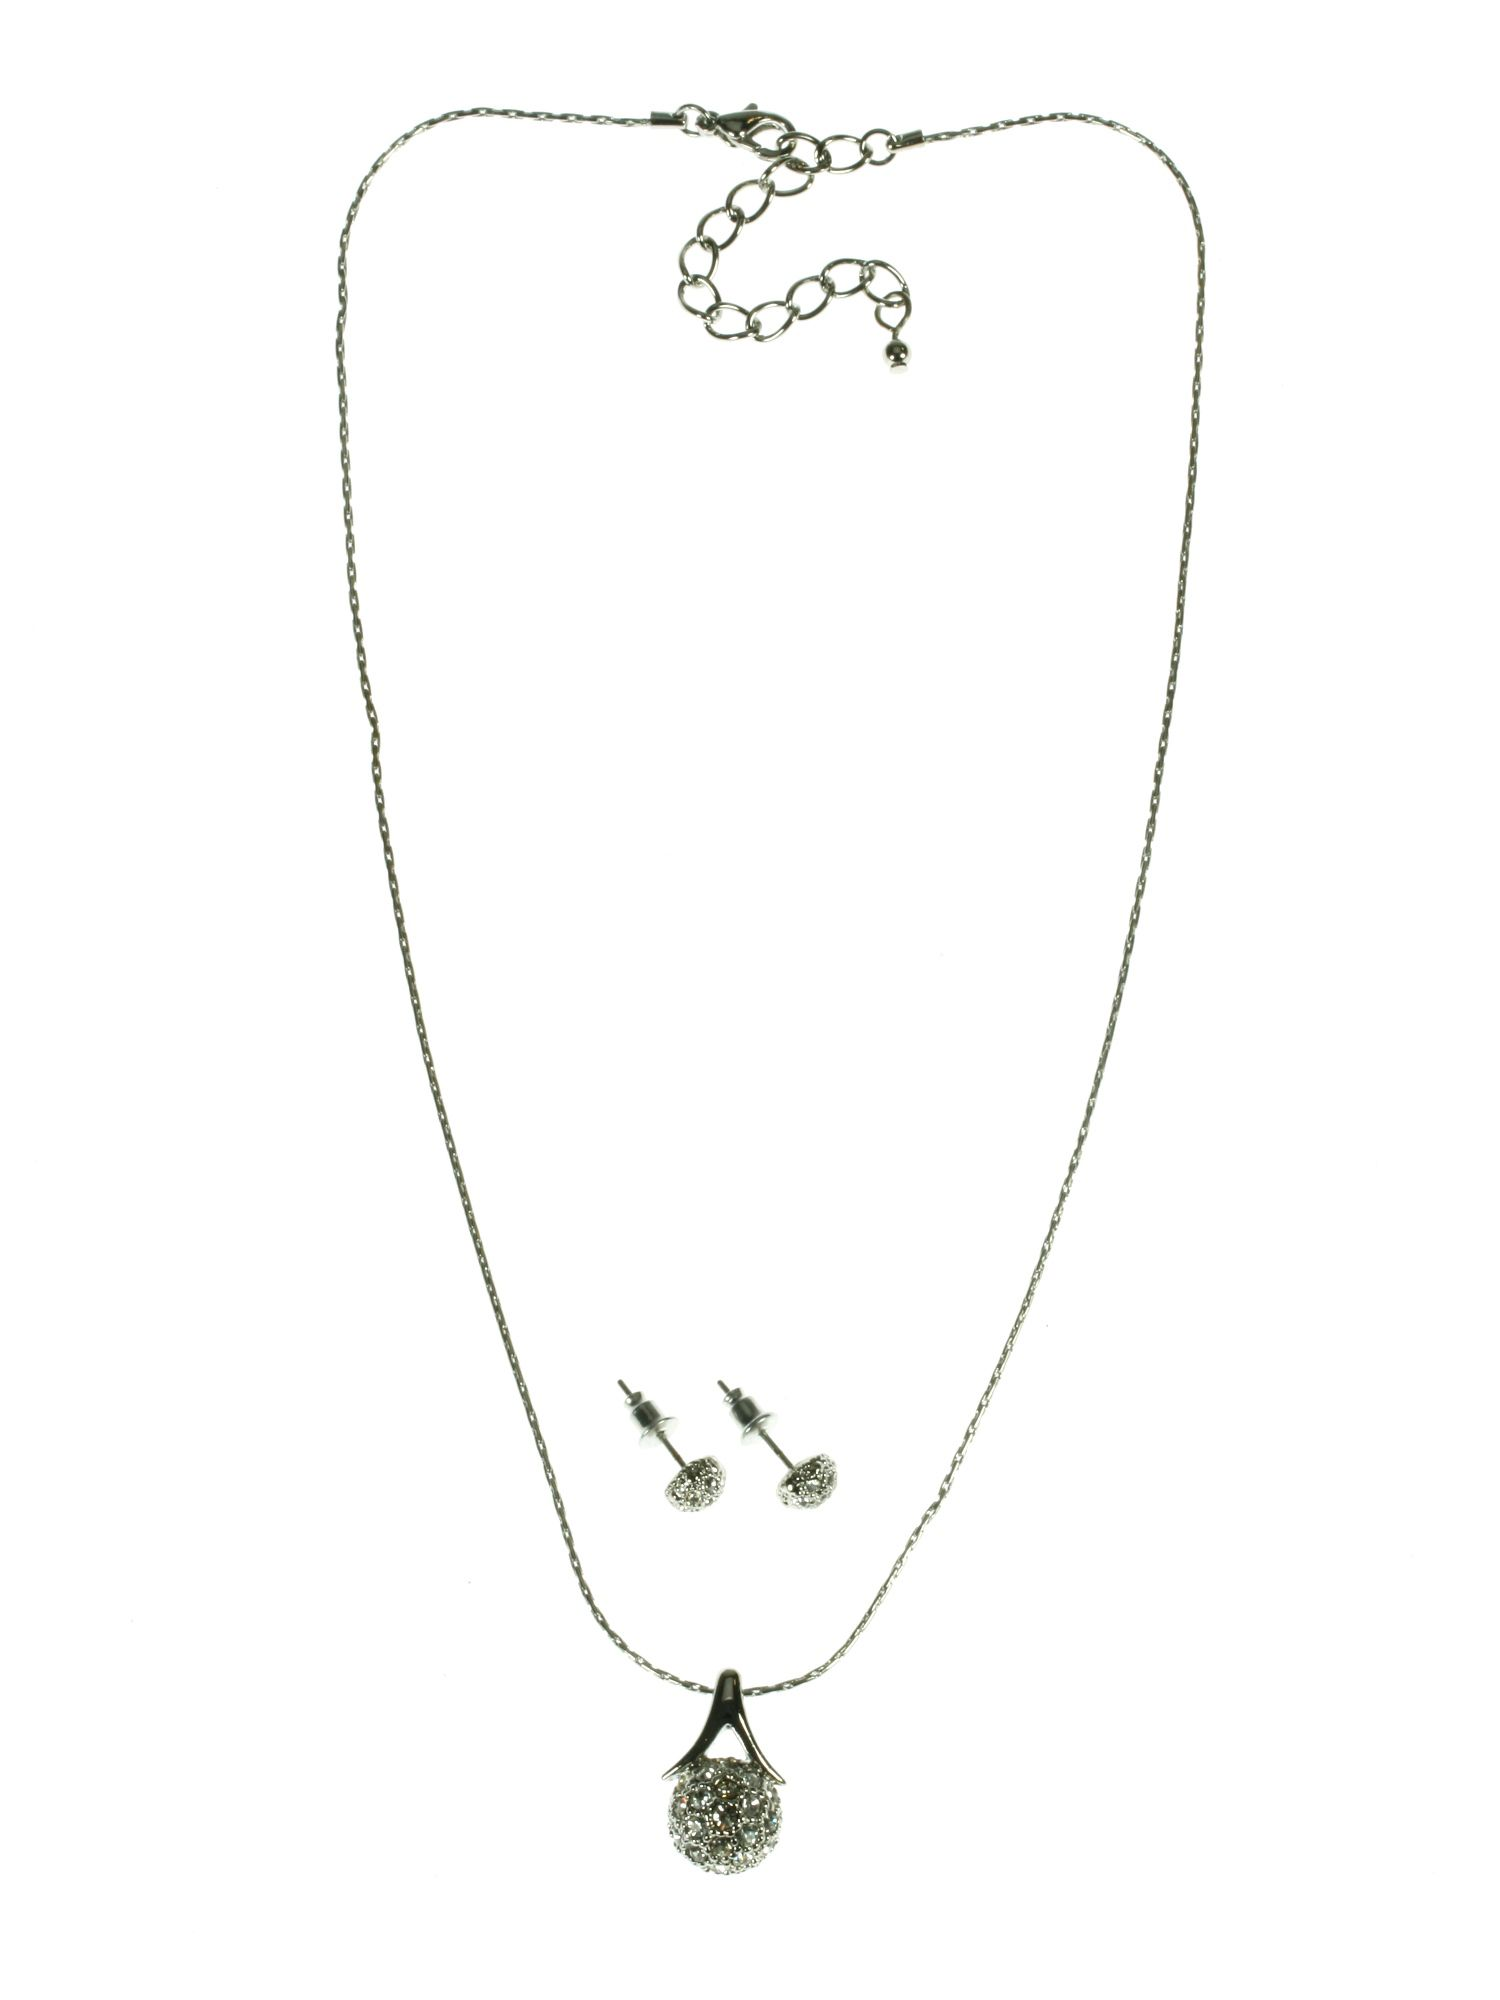 Rhodium plated wishbone necklace and earring set